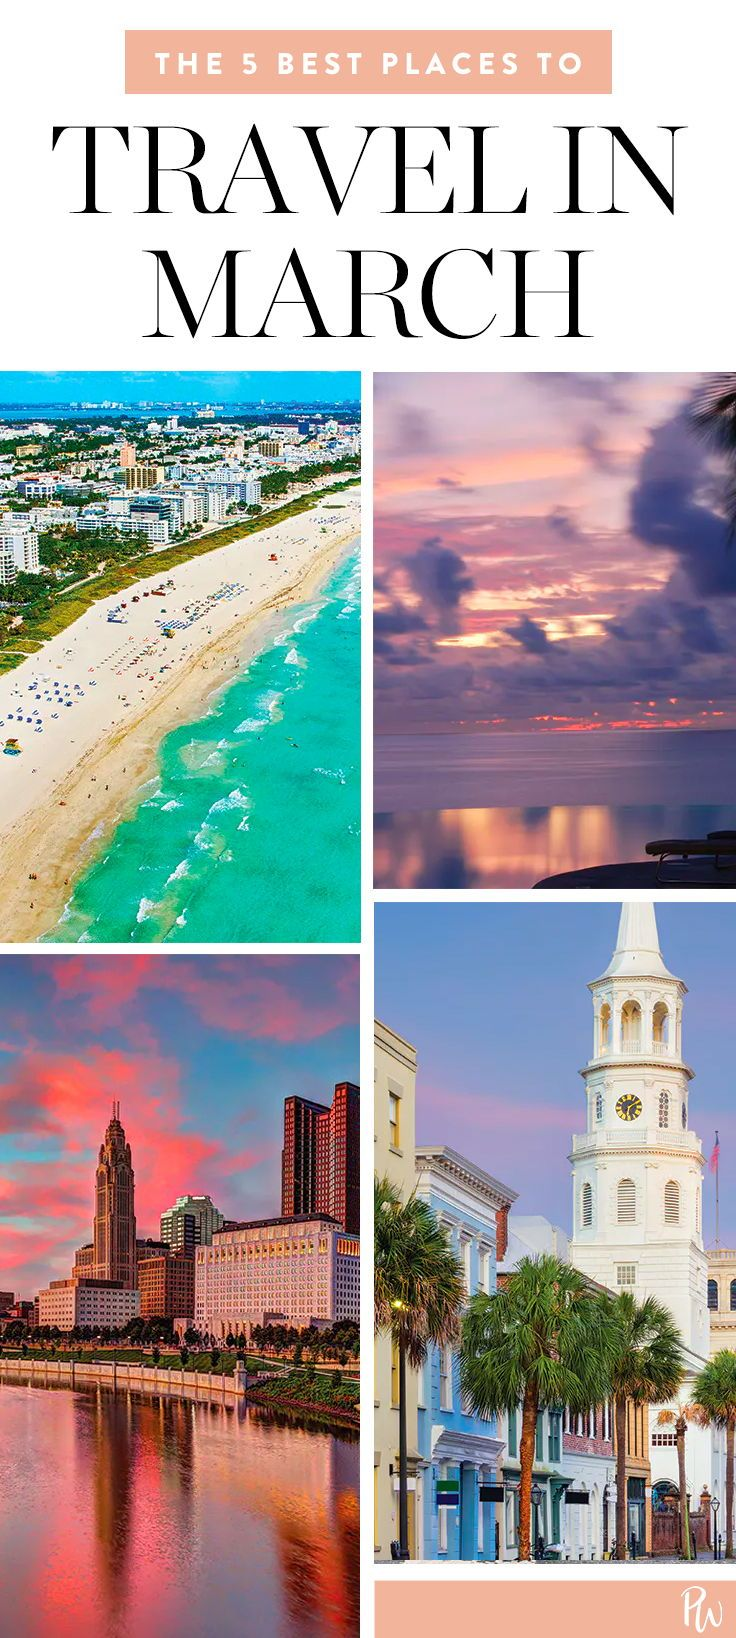 images?q=tbn:ANd9GcQh_l3eQ5xwiPy07kGEXjmjgmBKBRB7H2mRxCGhv1tFWg5c_mWT Collection of Info March Vacation Ideas @capturingmomentsphotography.net